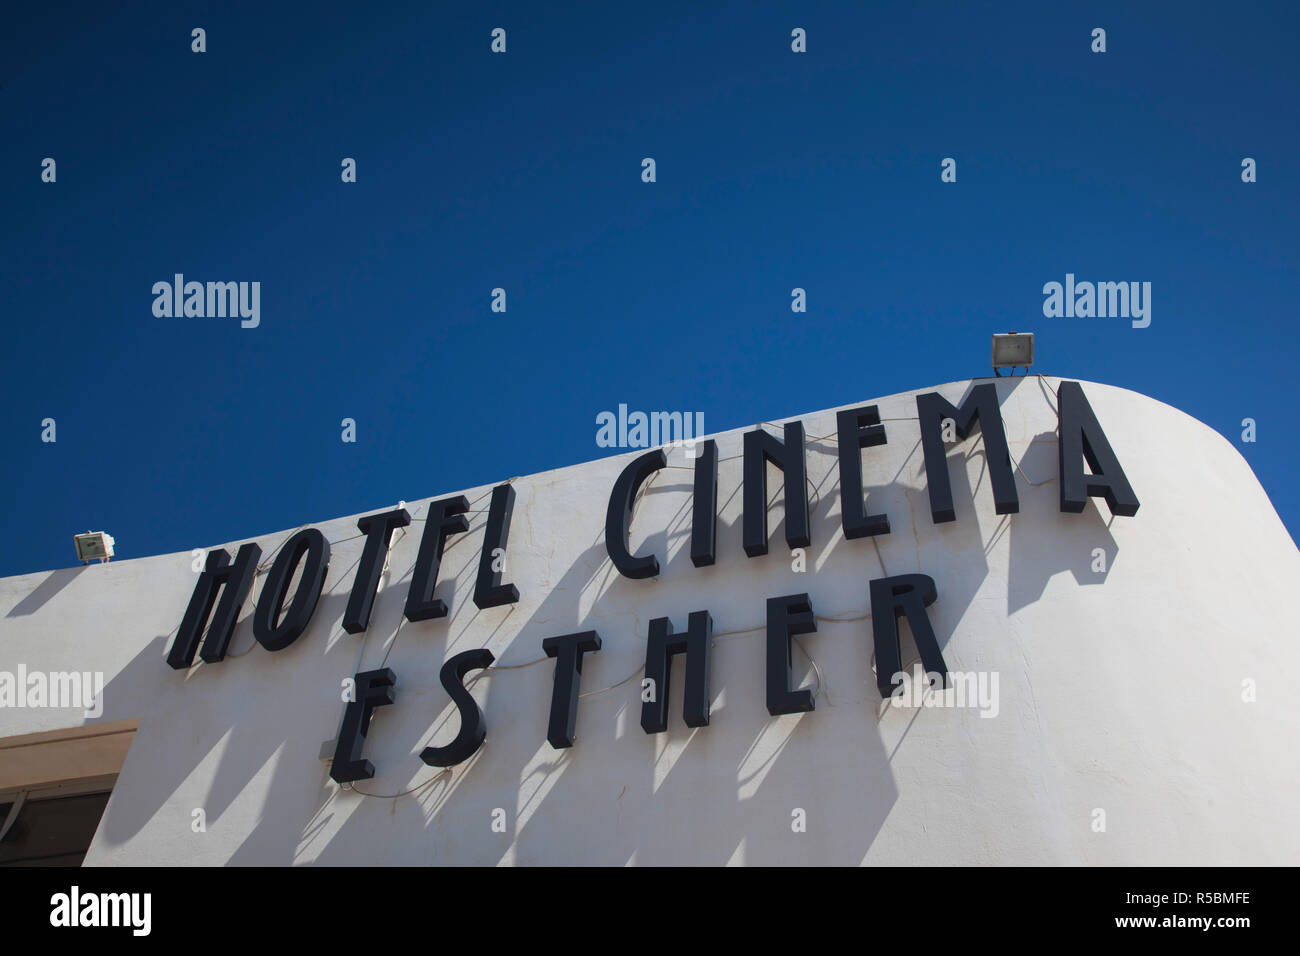 Israel, Tel Aviv, Dizengoff Square, Hotel Cinema Esther, hotel in renovated film theater building sign - Stock Image